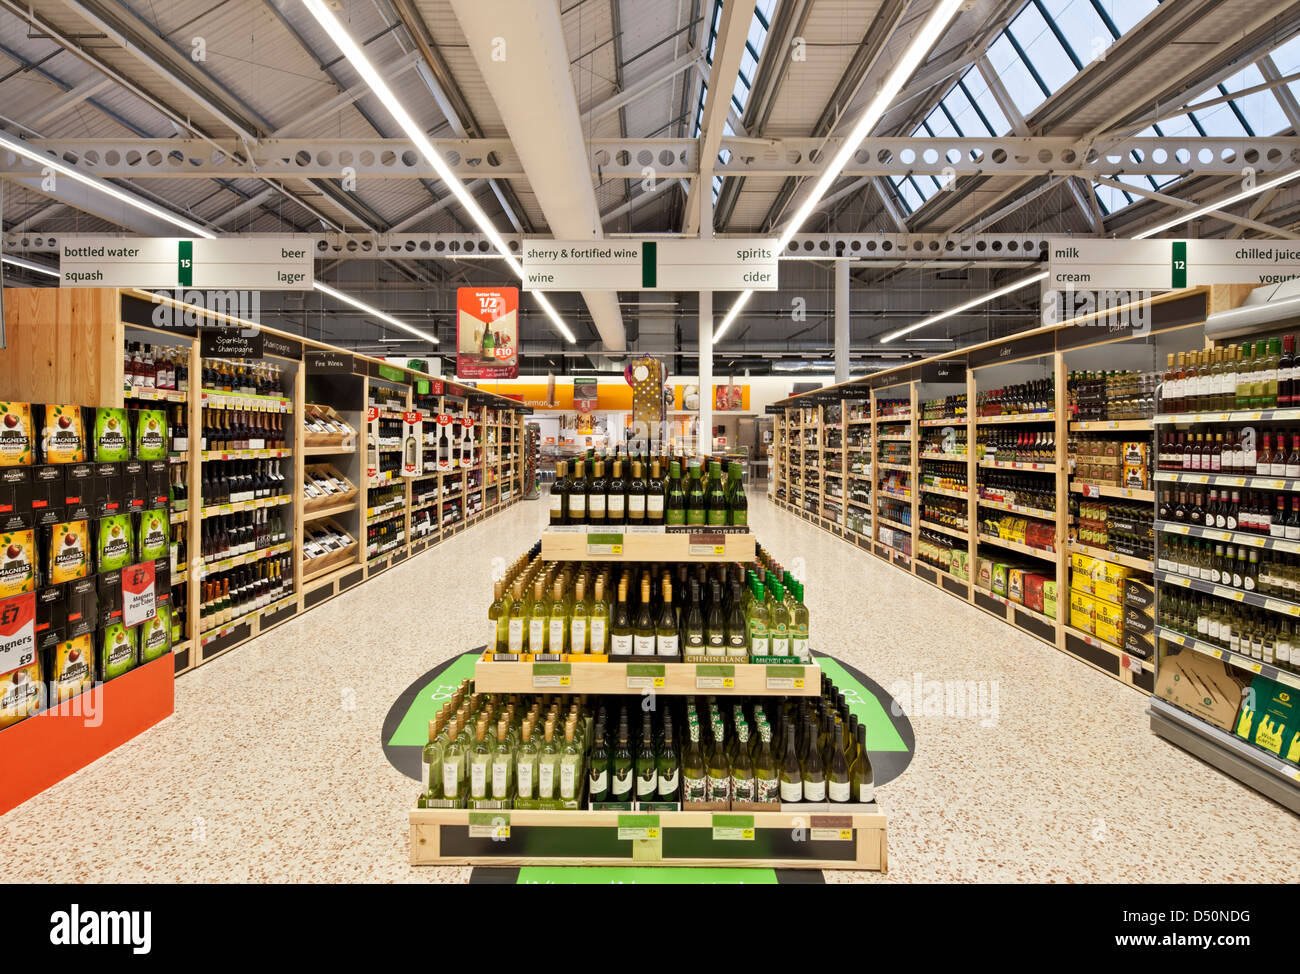 Display of wine at a supermarket - Stock Image